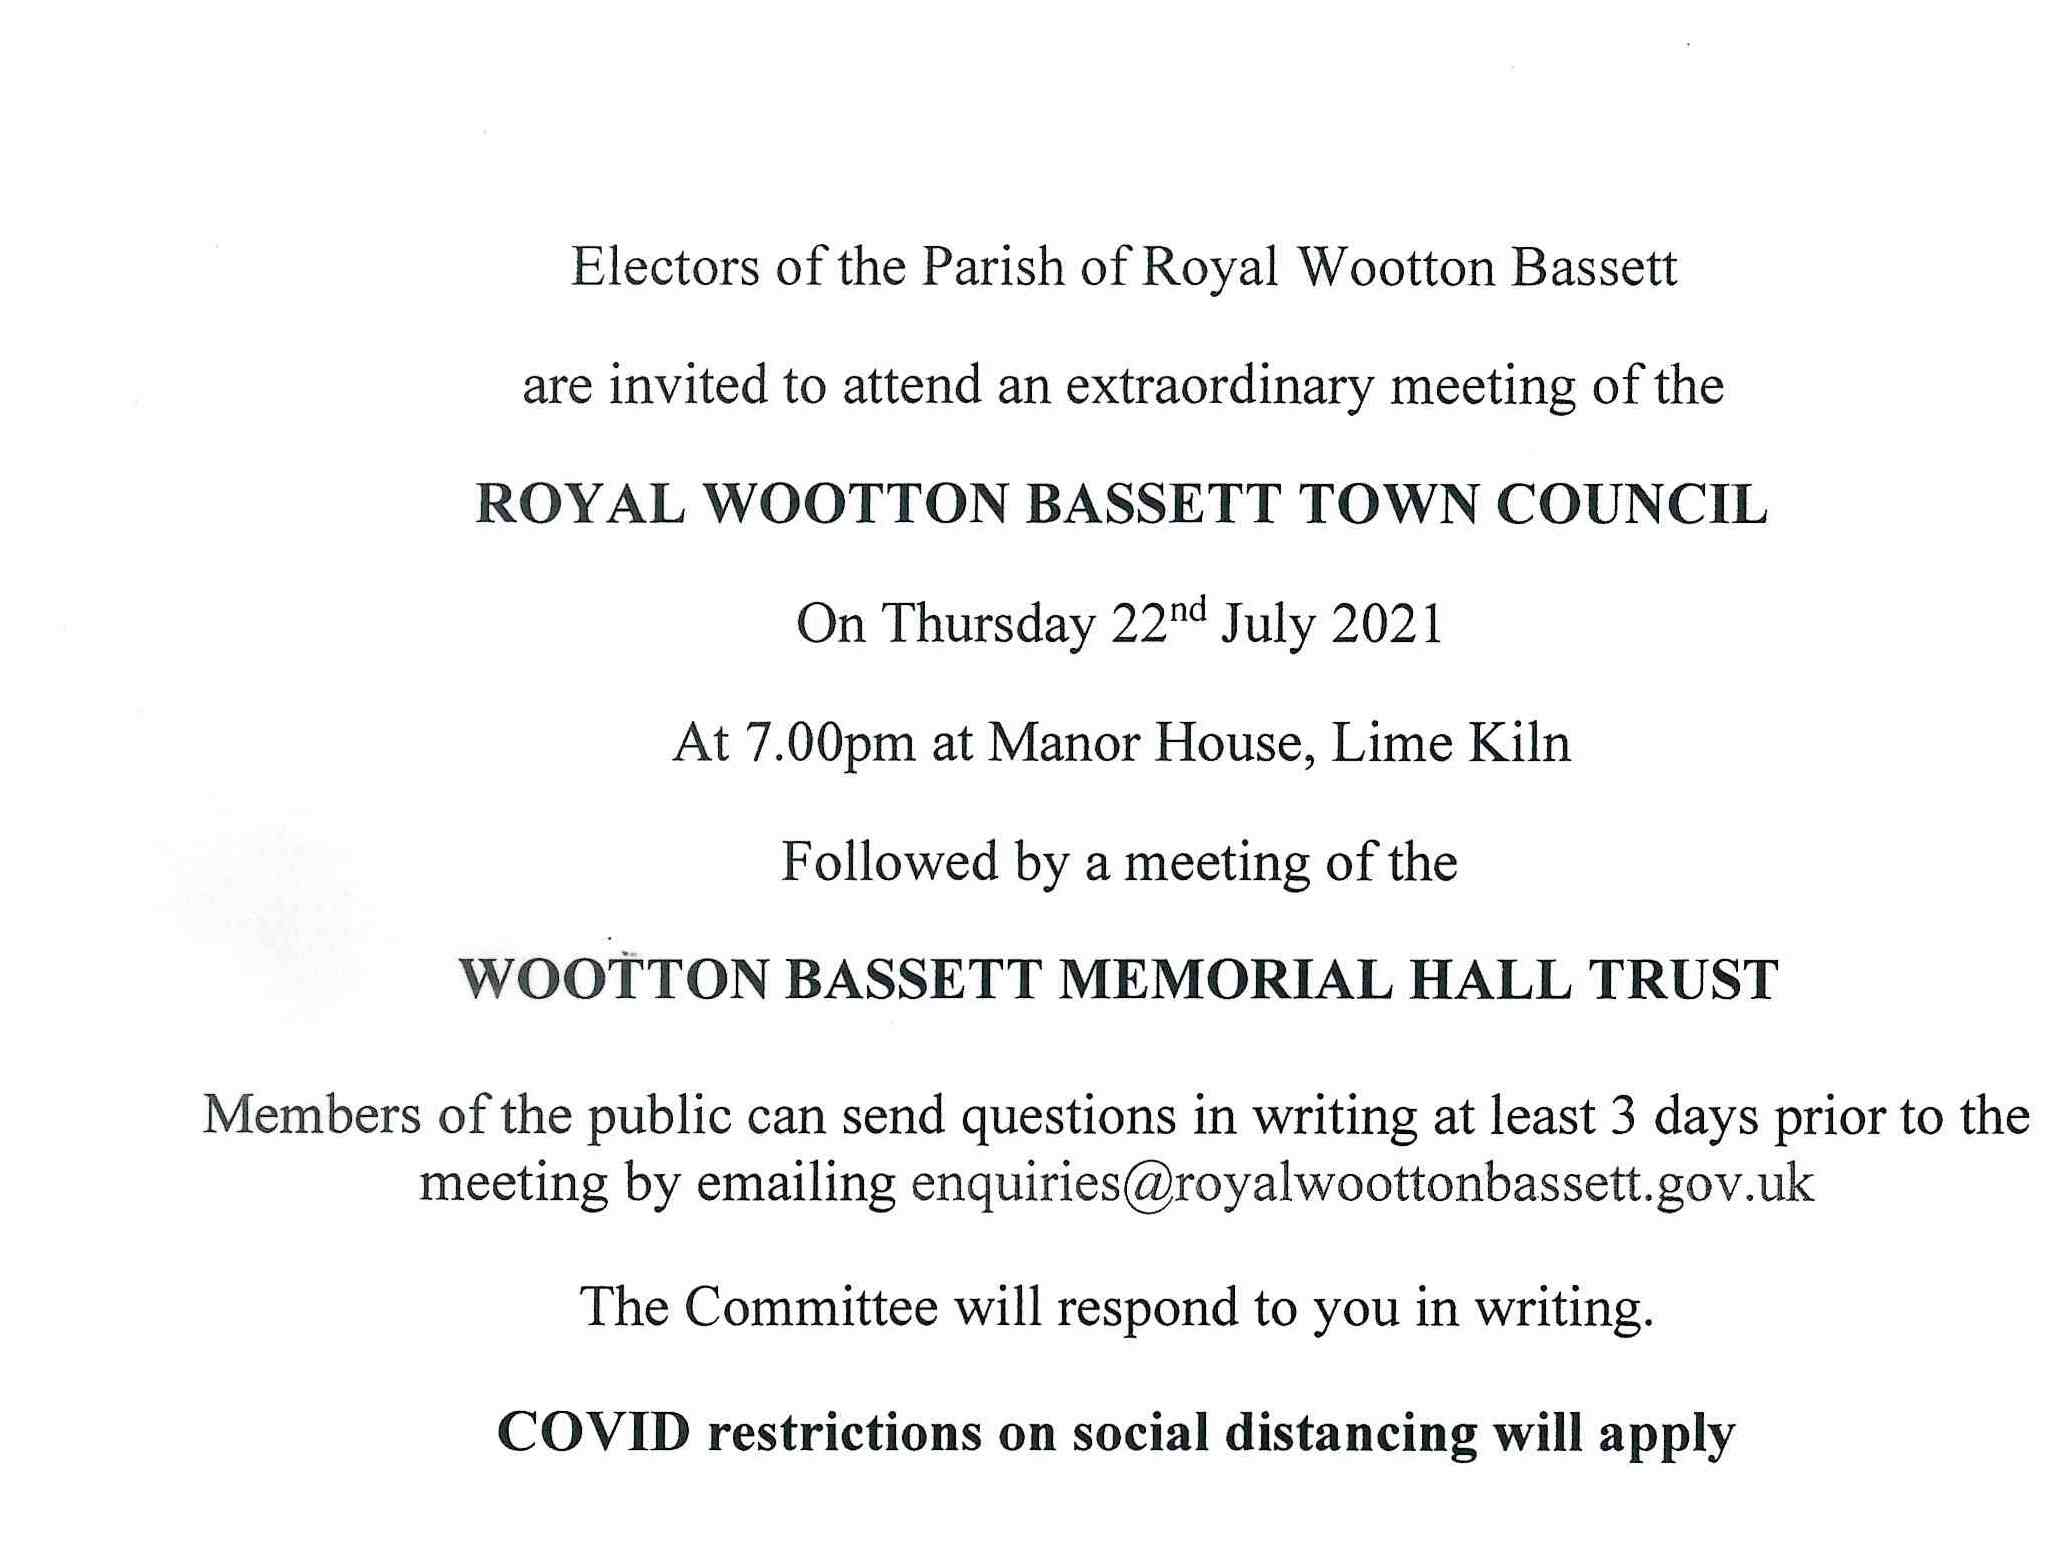 meeting notice for 22nd July 2021